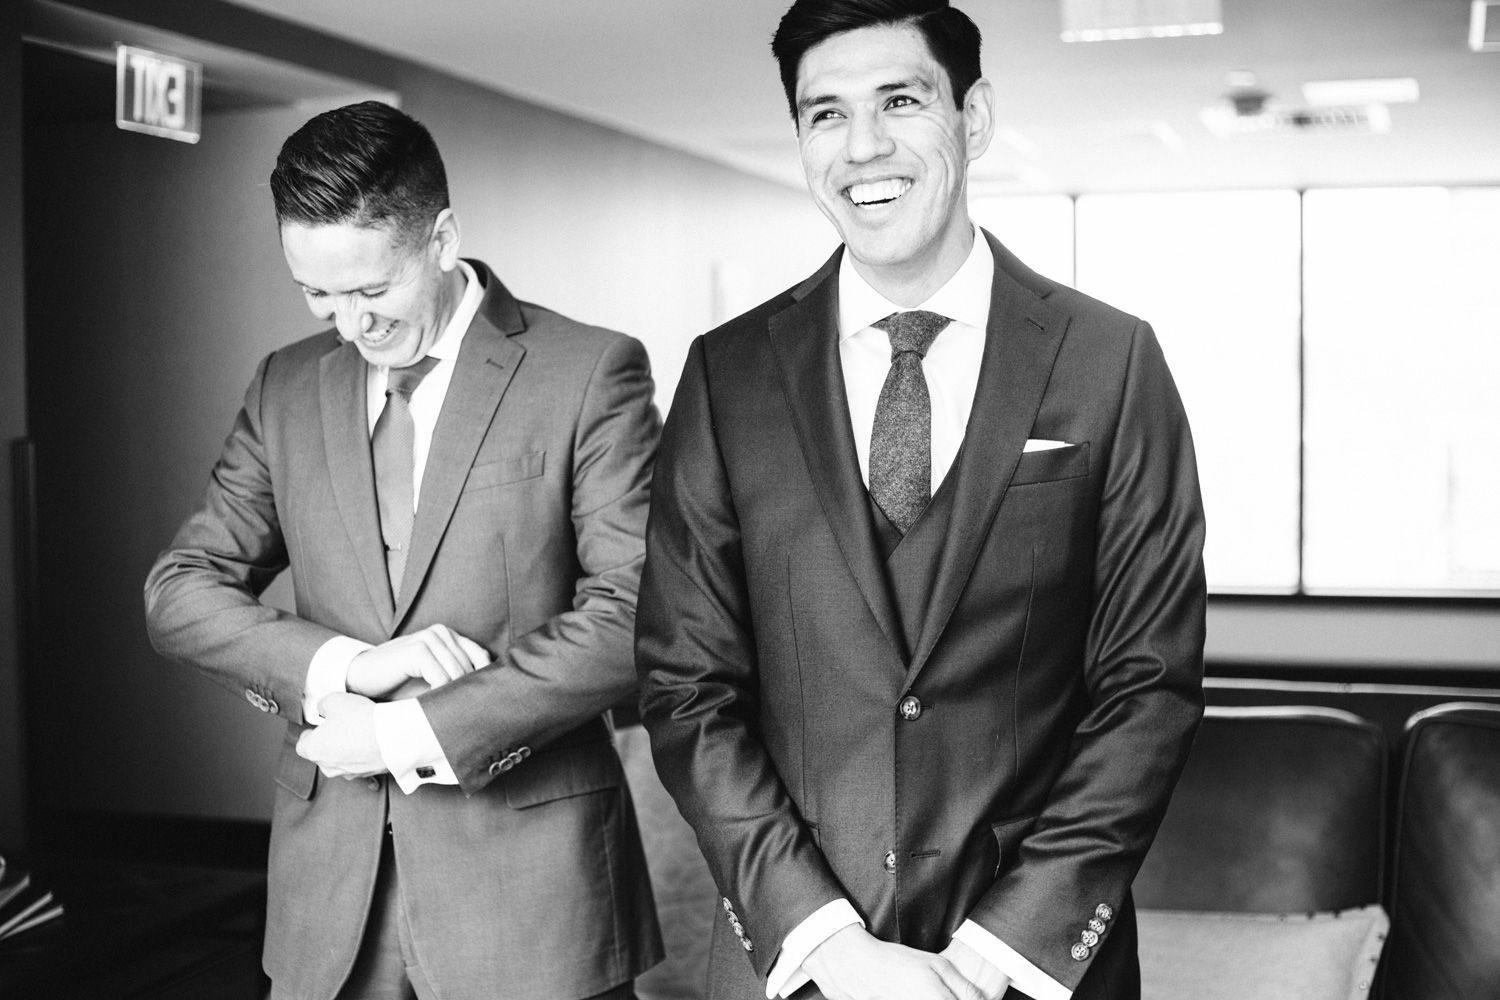 Groom and groomsman share a laugh before a Hudson Valley winter wedding